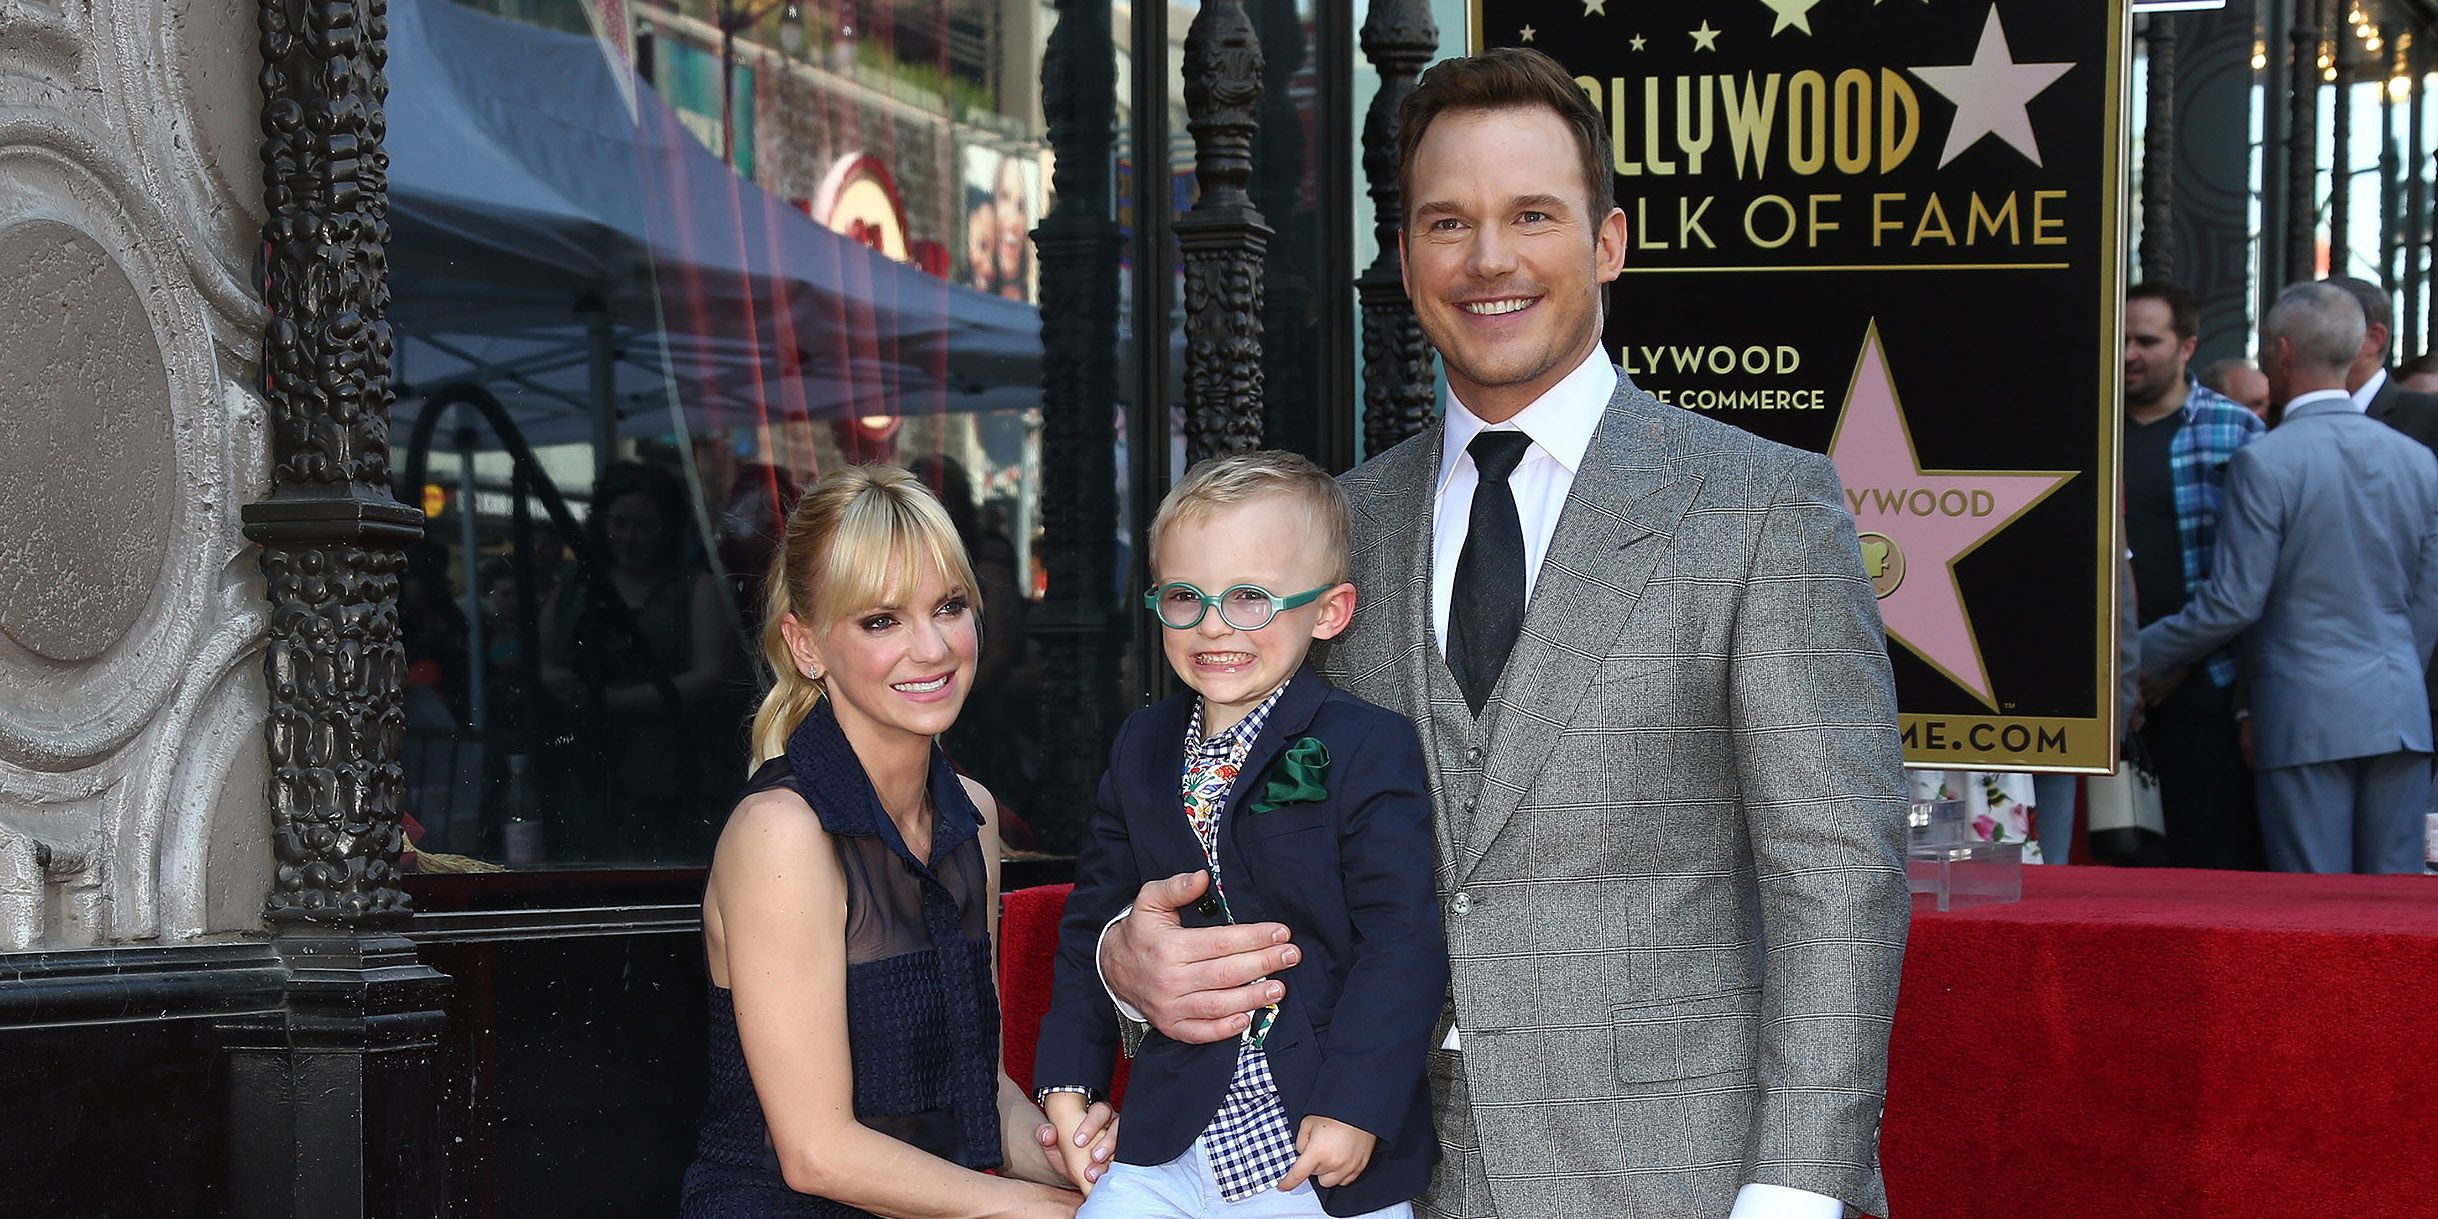 Chris Pratt Just Returned to Instagram With a Cute Family Photo